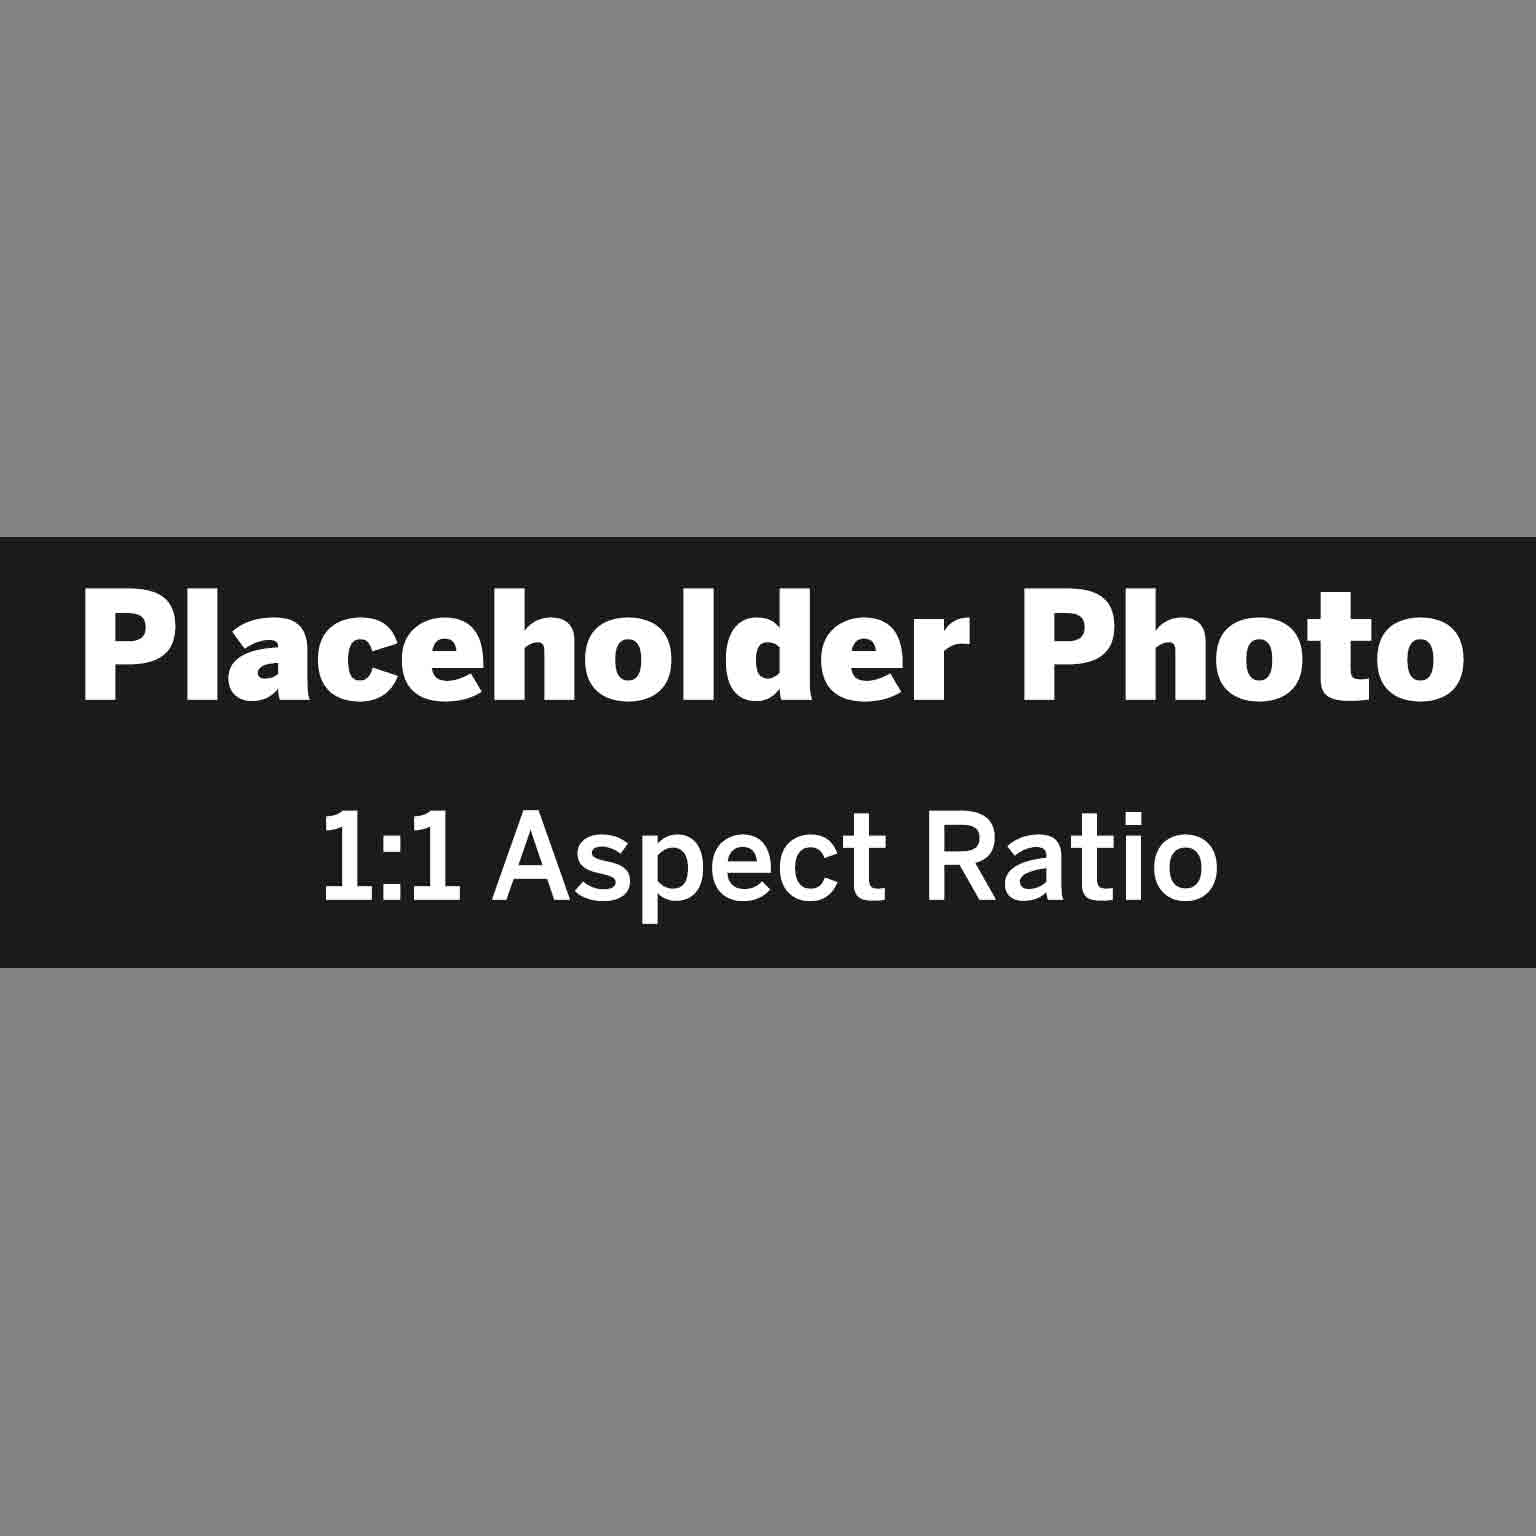 1:1 aspect ratio placeholder photo